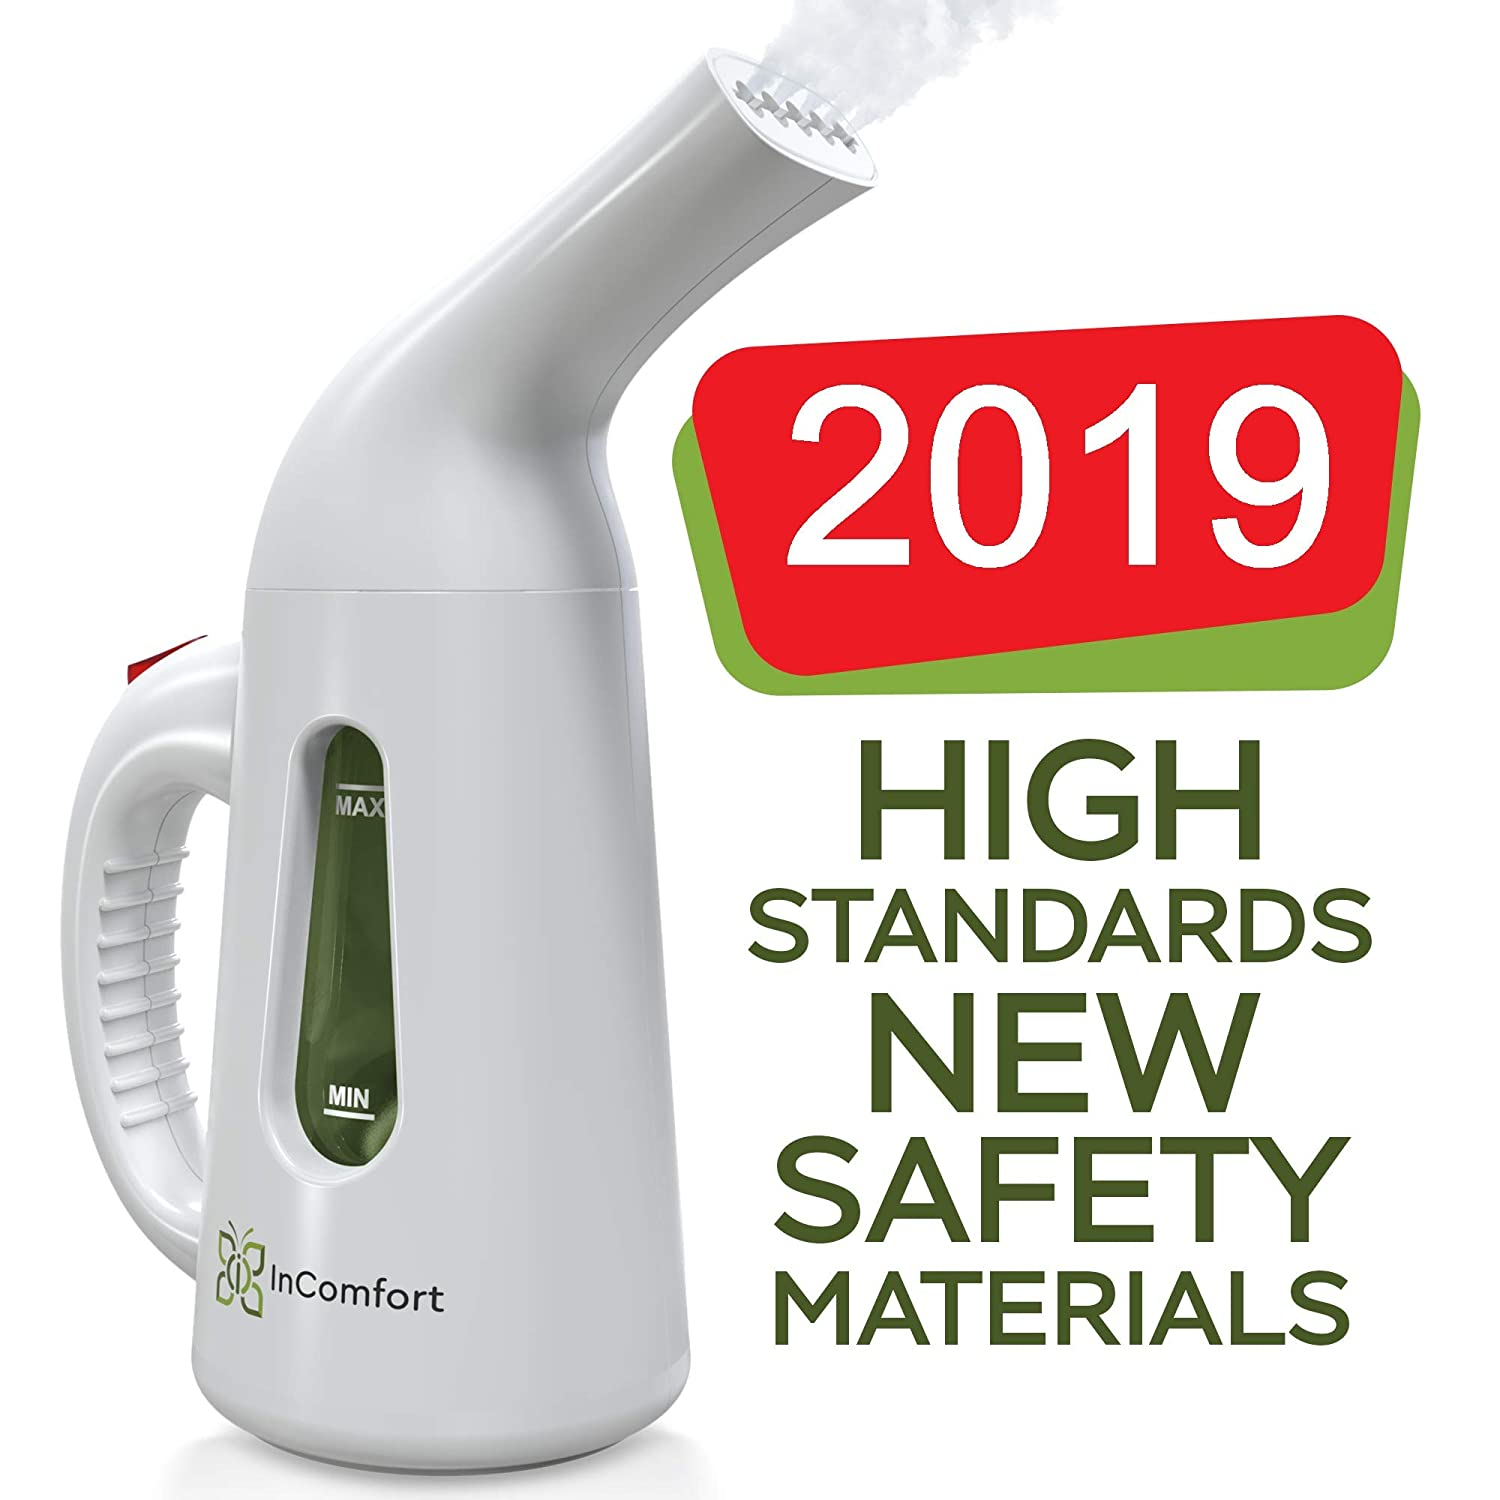 Hand Held Steamer for Clothes – Portable Clothes Steamer Handheld – Power Fabric Clothes Steamer - Little Hand Steamers for Home - Compact and Small Travel Steamer - 140ml Fast Heat Up Mini Steamer